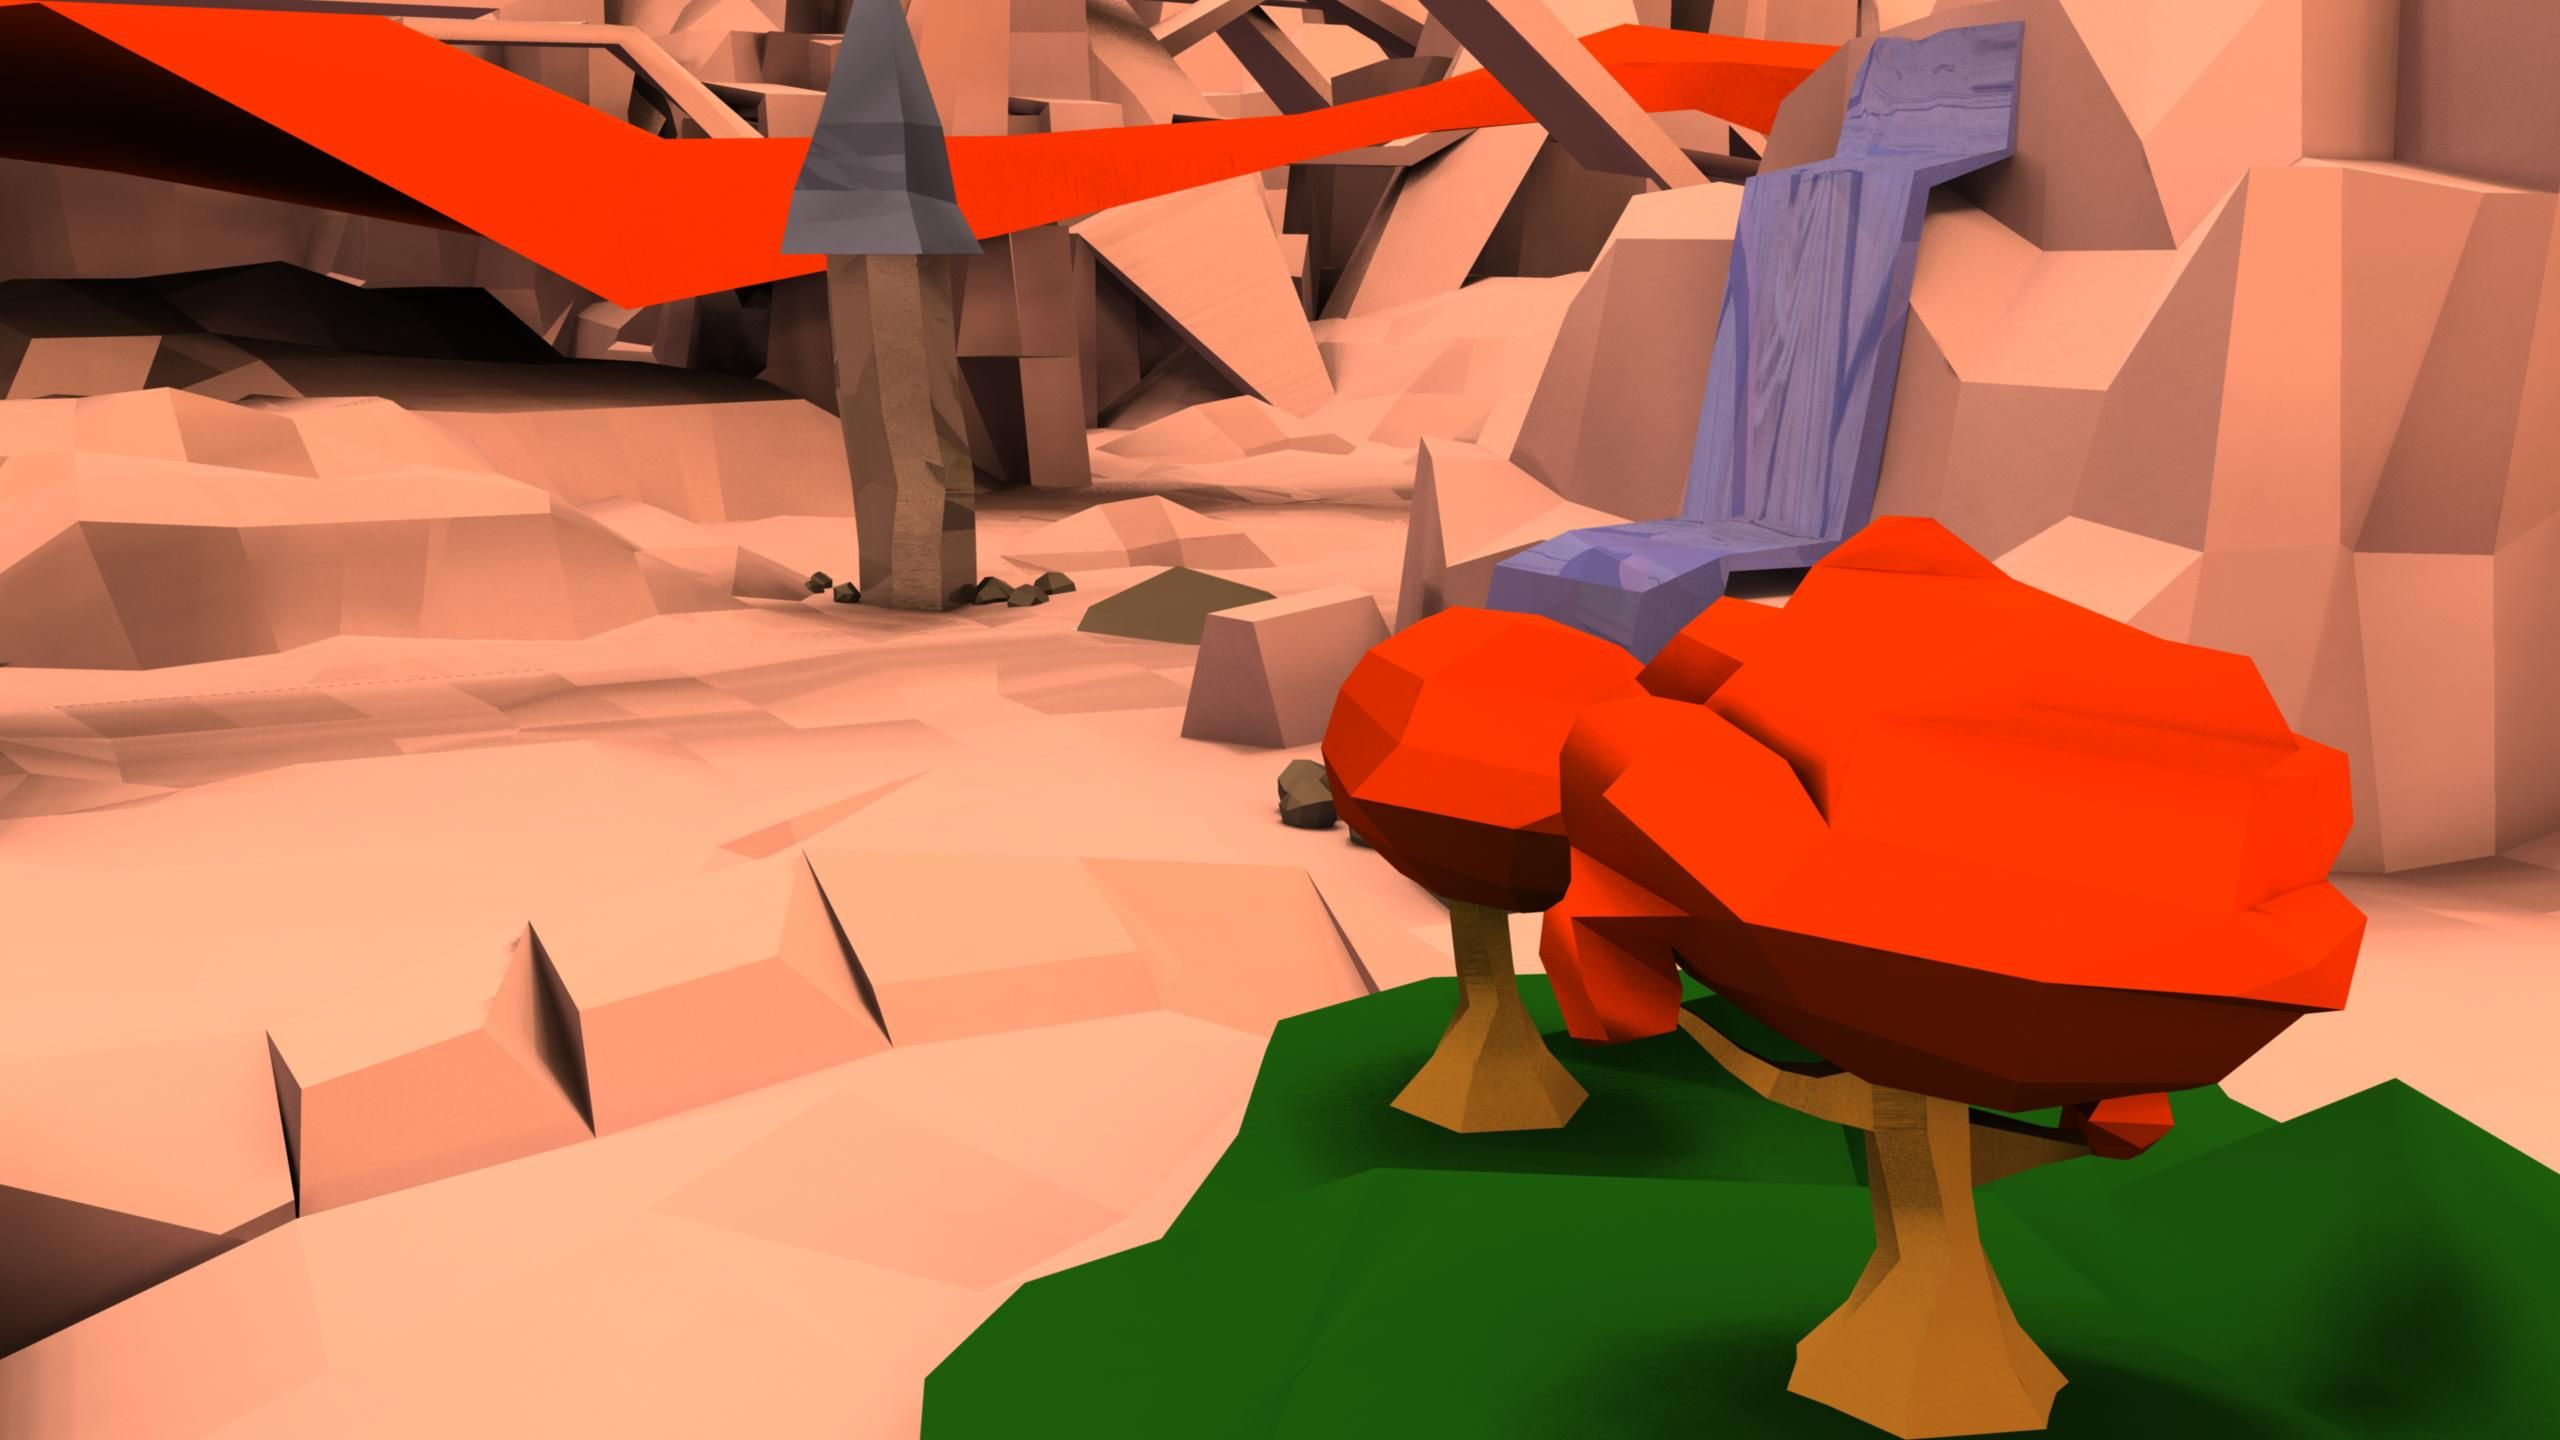 more low-poly